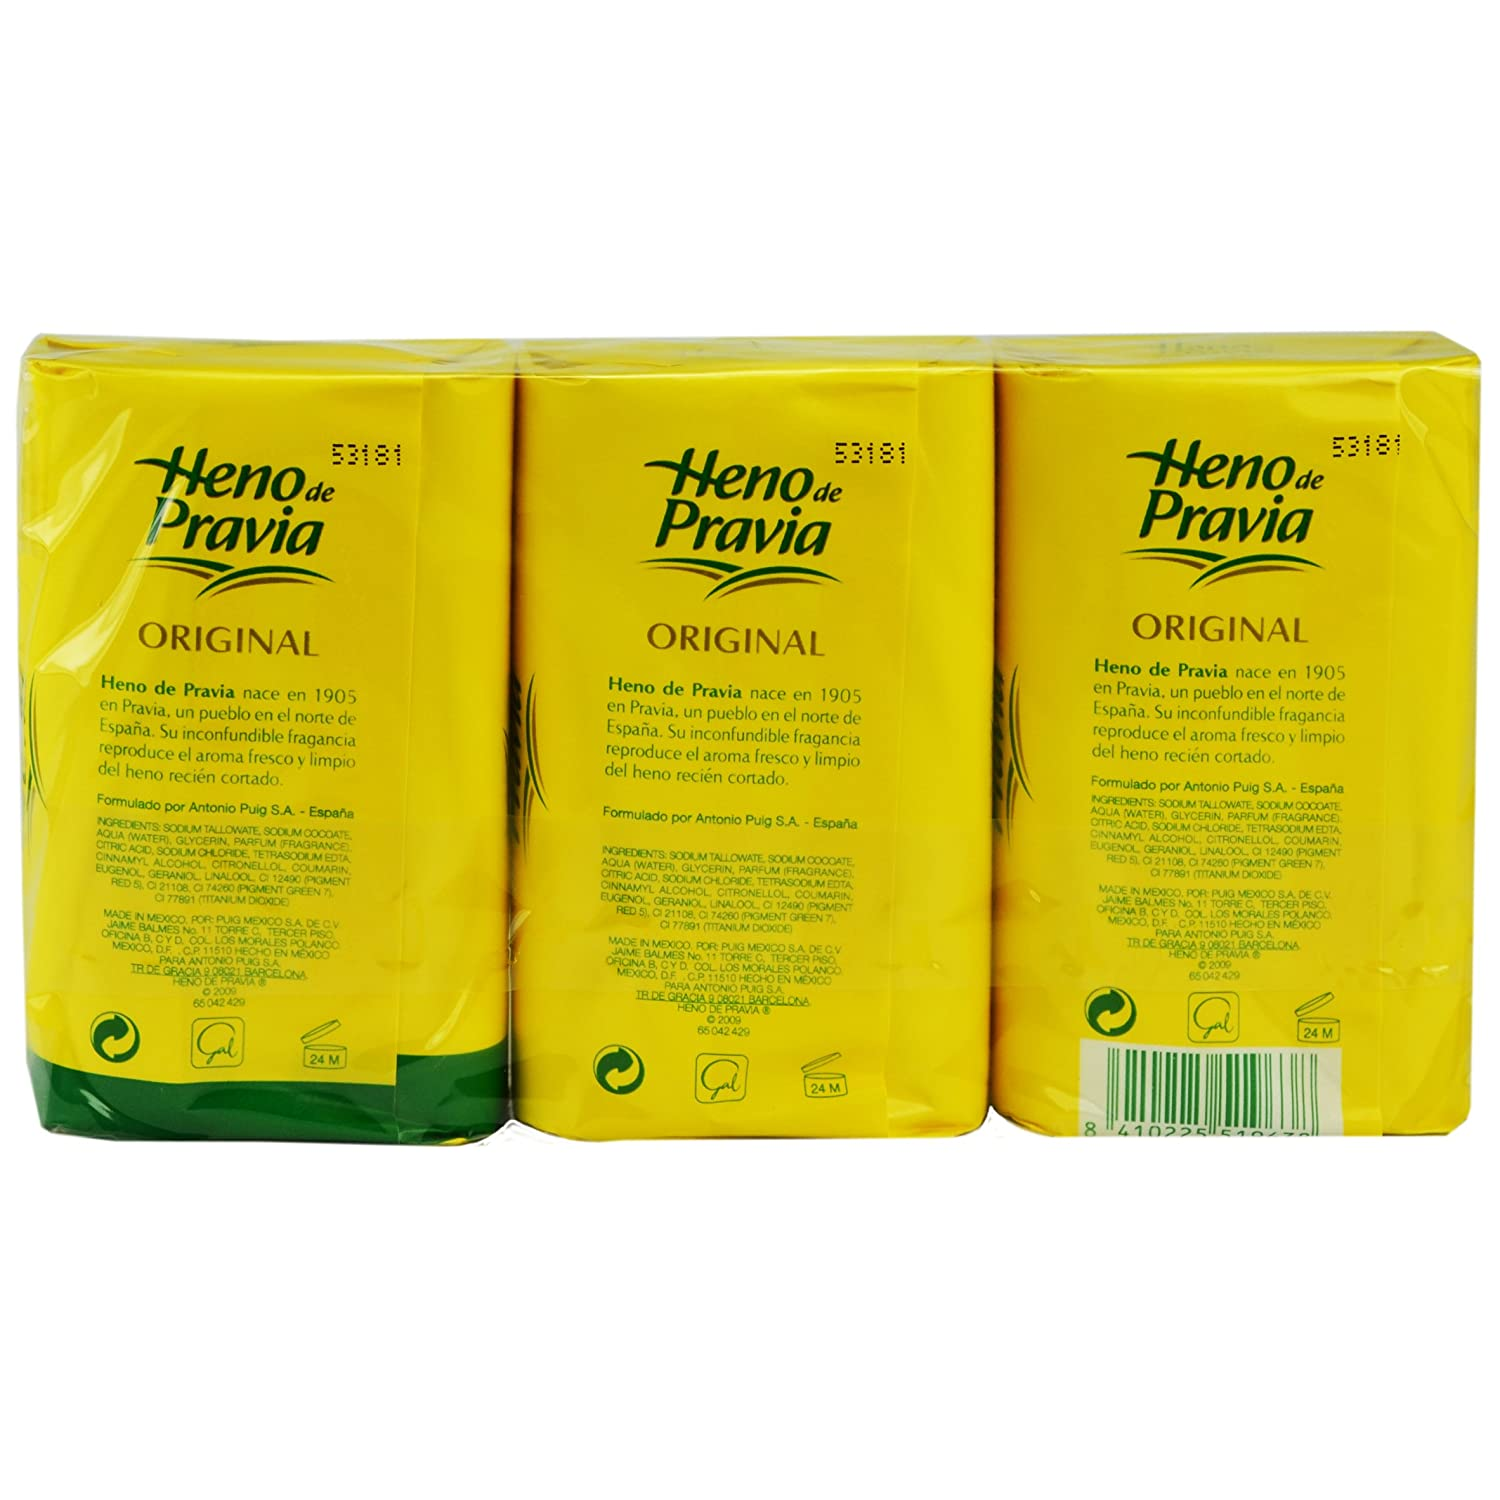 Amazon.com: HENO DE PRAVIA - 4 SETS OF 2 SOAPS PLUS 1 FREE 4 OZ. 4-PACK (12 SOAPS): Beauty